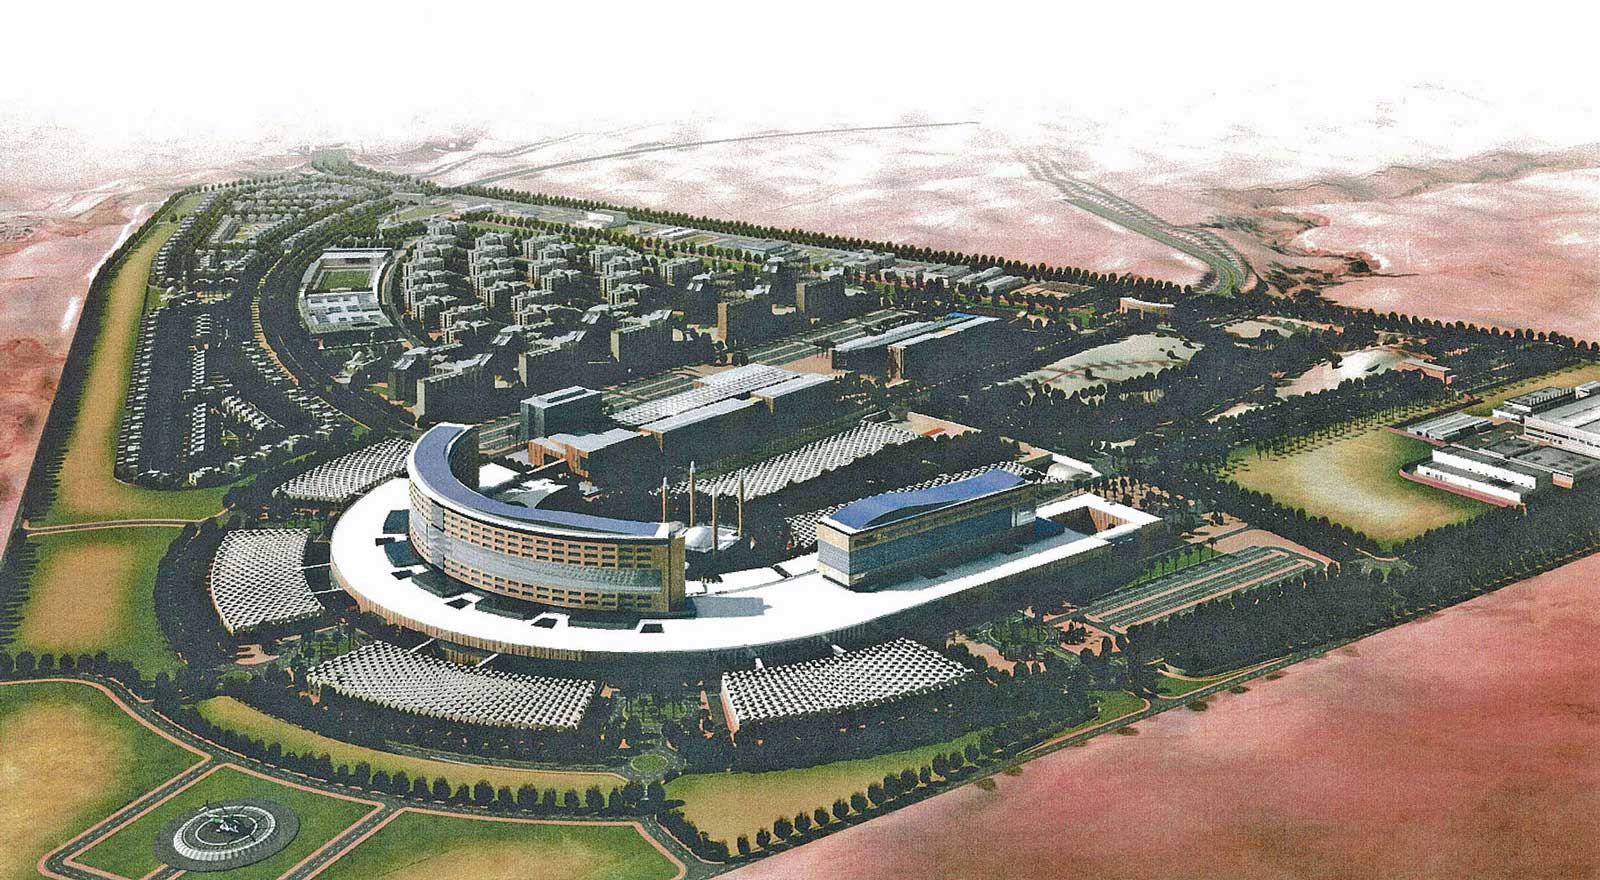 Security Forces Medical Center Project at Riyadh and Jeddah